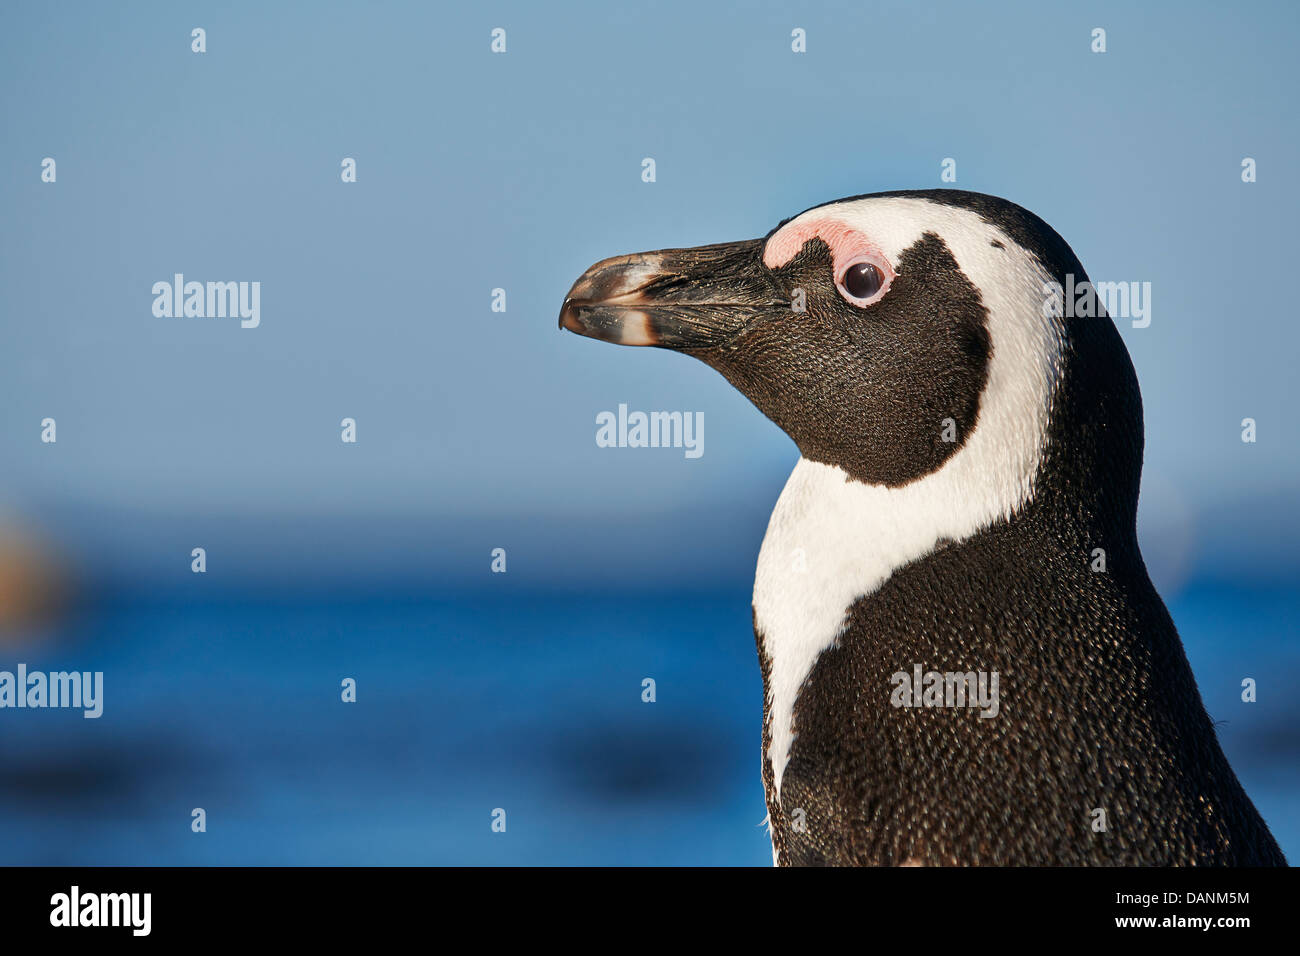 close up portraet of African Penguin, Spheniscus demersus, Boulders Beach, Simon's Town, Cape Town, Western - Stock Image